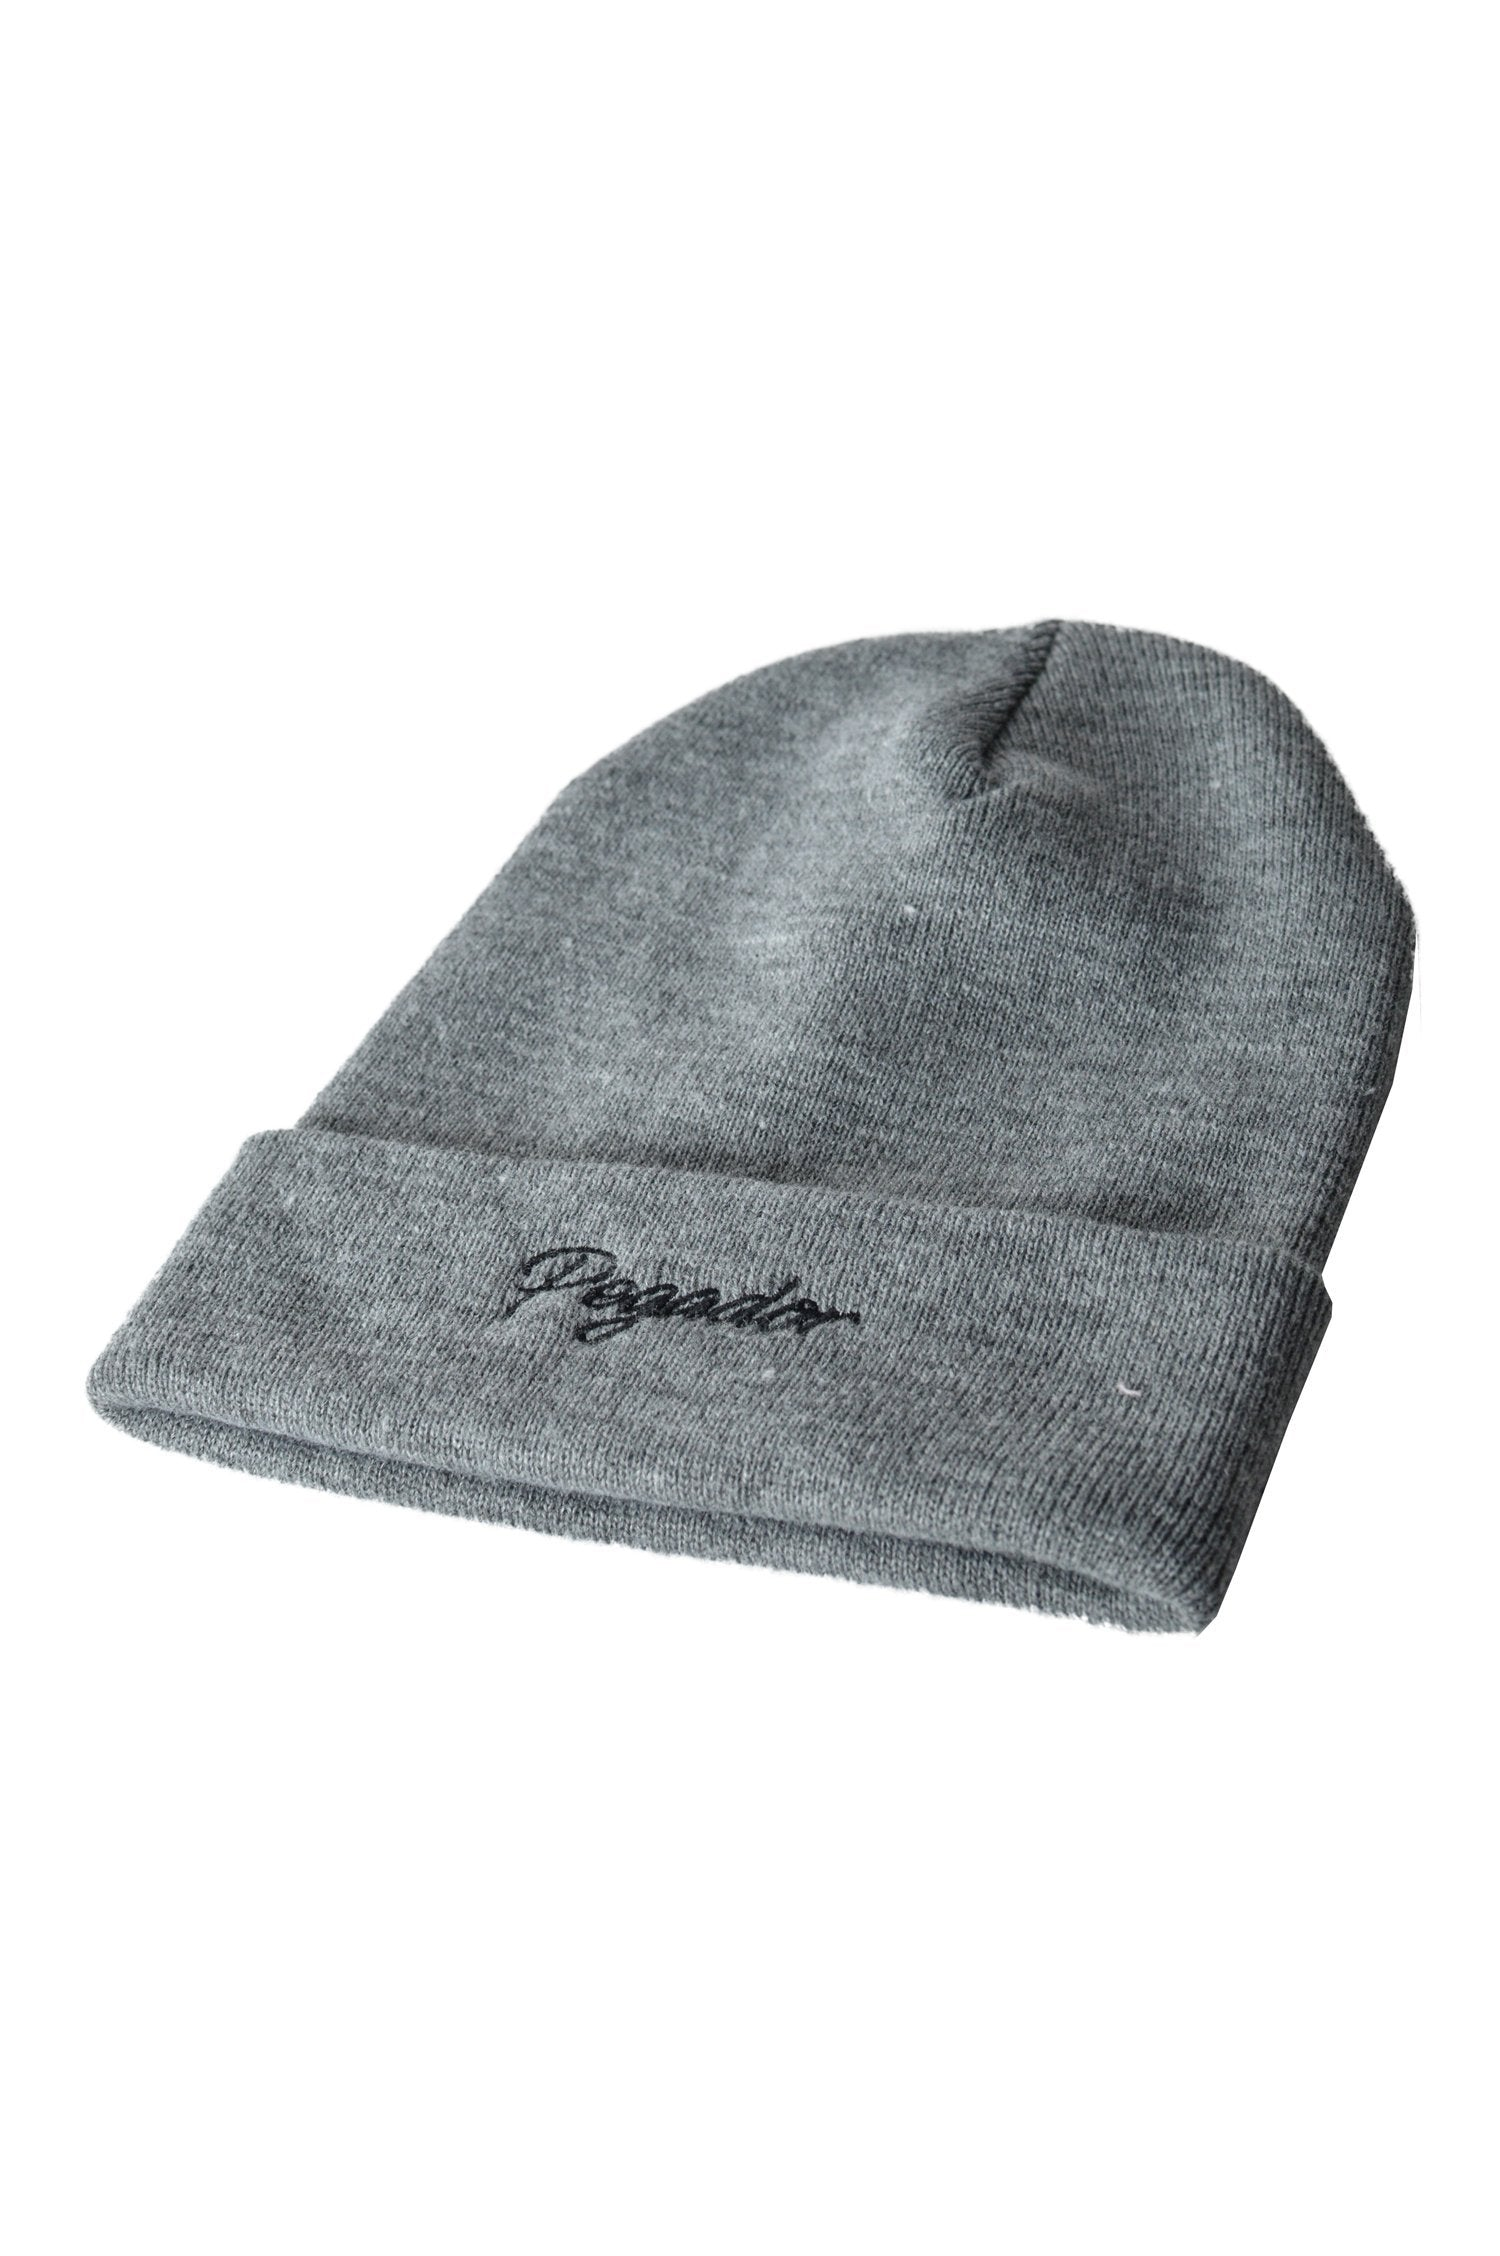 PEGADOR - Pegador Signature Beanie Heather Grey - PEGADOR - Dominate the Hype